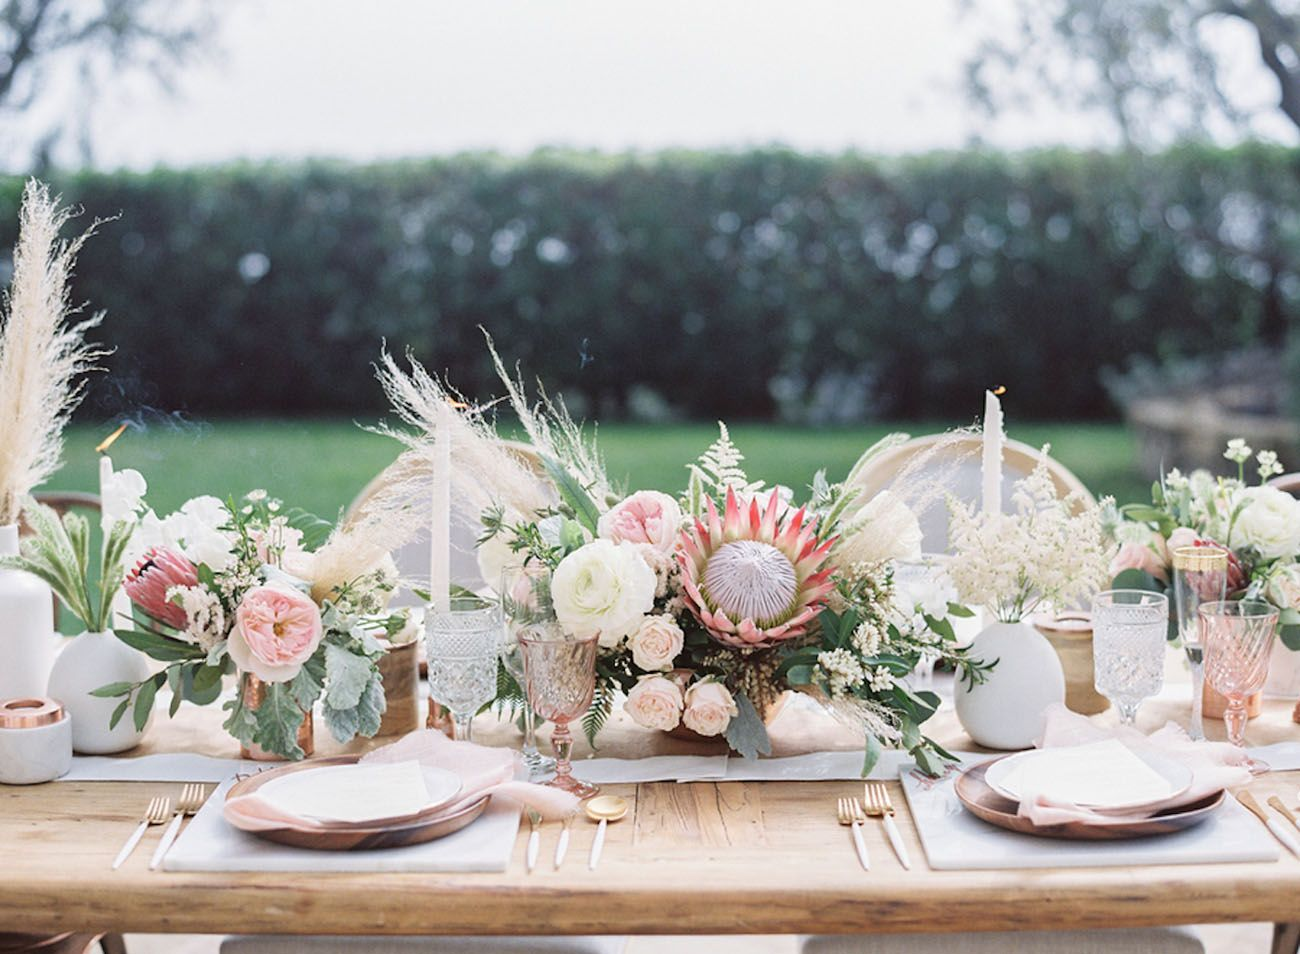 diy beach theme wedding centerpieces%0A protea centerpiece with blush pink and white accents